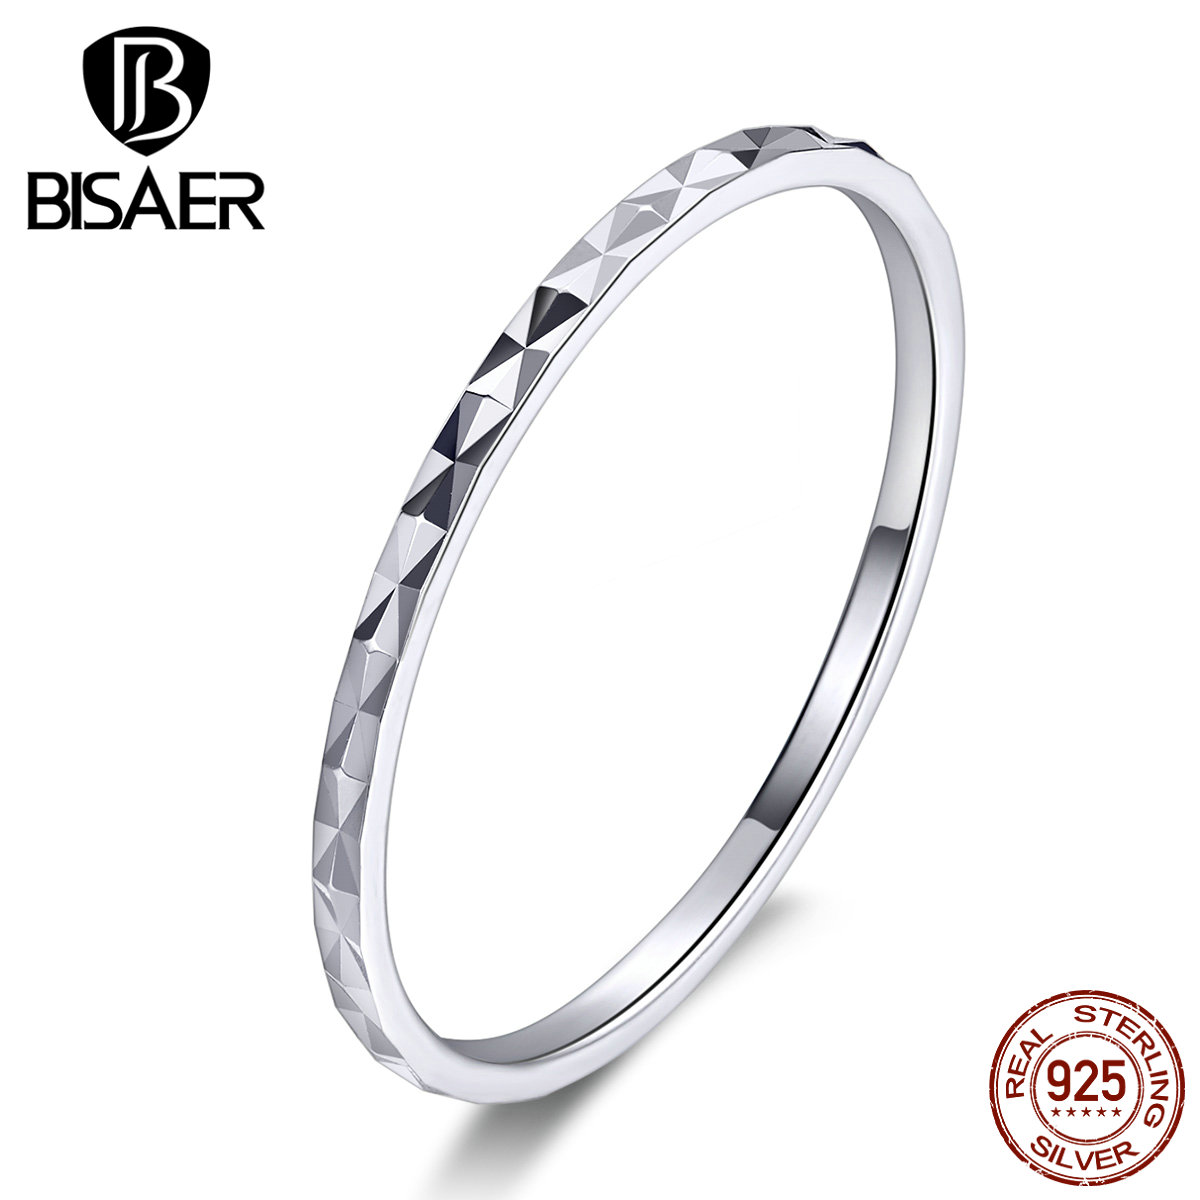 Stack Rings BISAER 925 Sterling Silver Simple Silm Line Micro Pave Stack-Rings For Women Knuckle Ring Wedding Jewelry ECR586